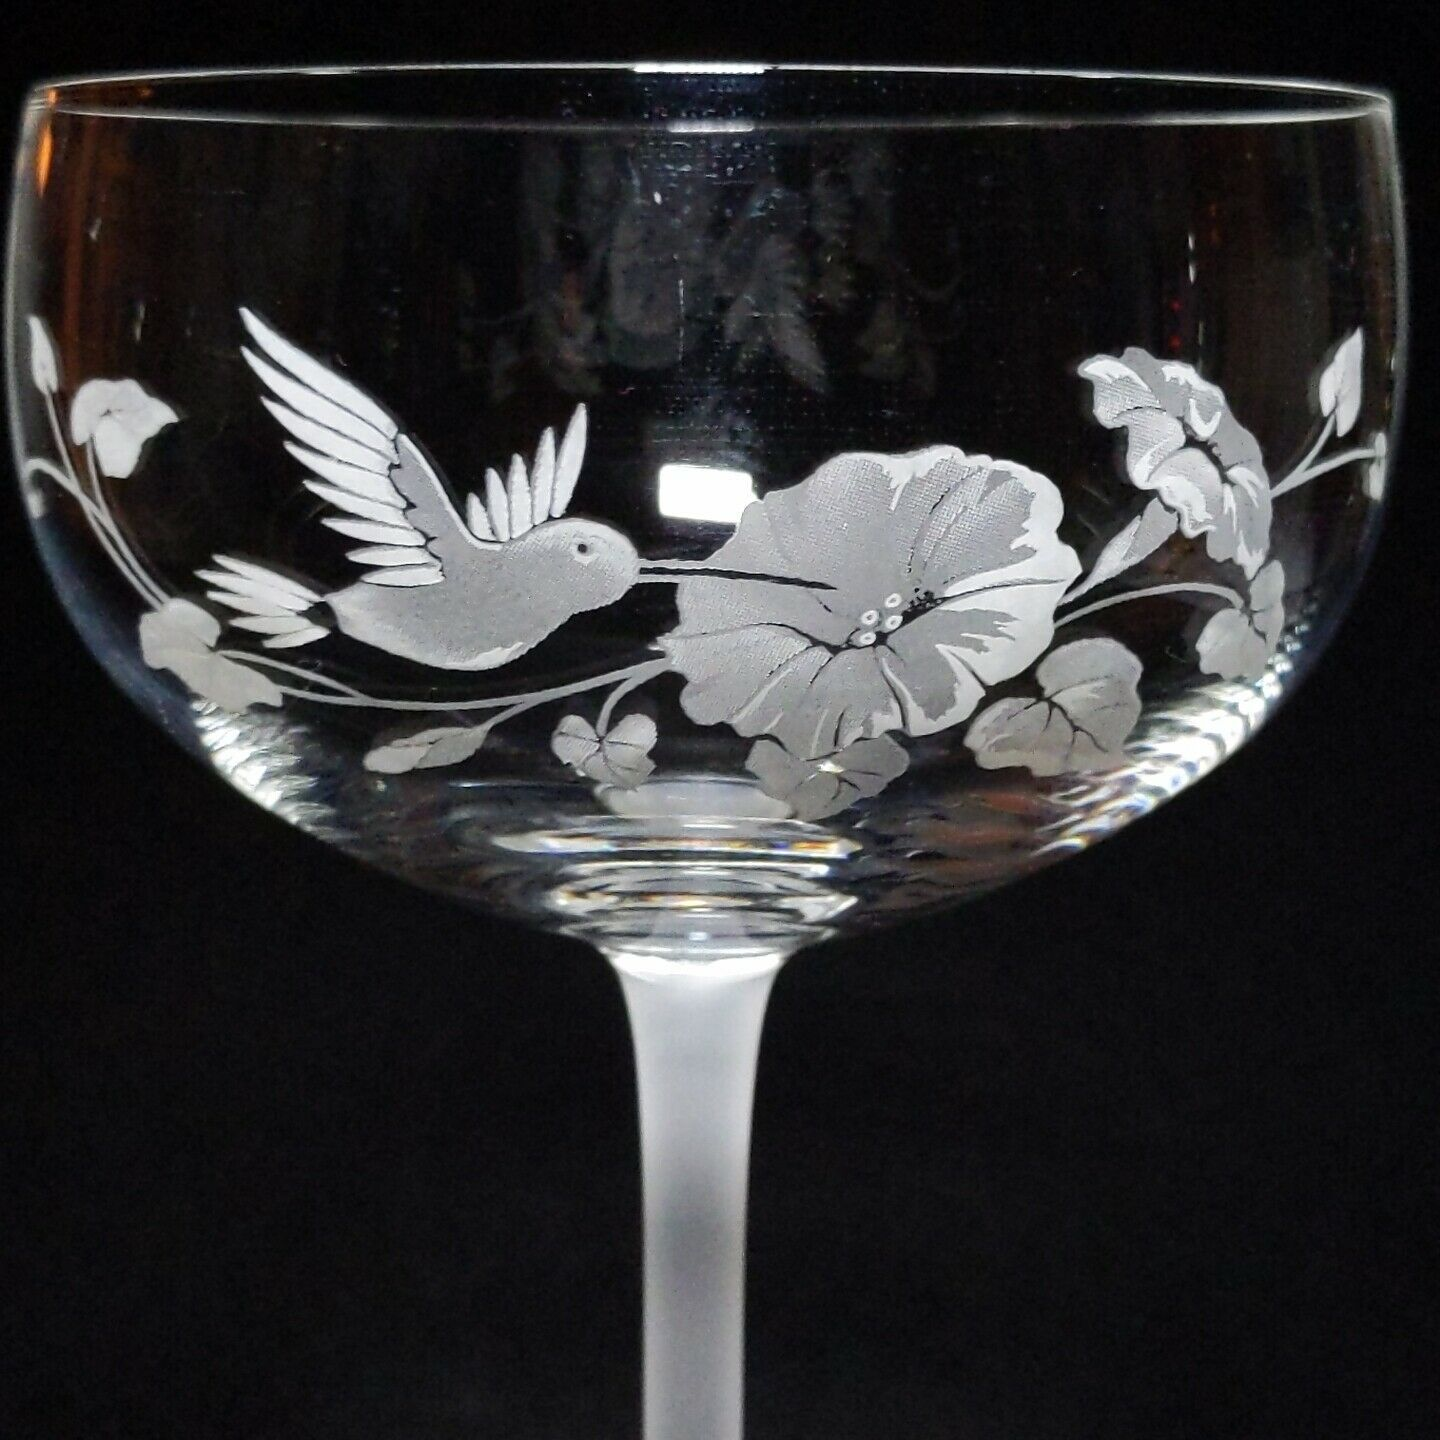 4 (Four) AVON HUMMINGBIRD Etched Crystal Champagne/ Tall Sherbet Glasses France image 4